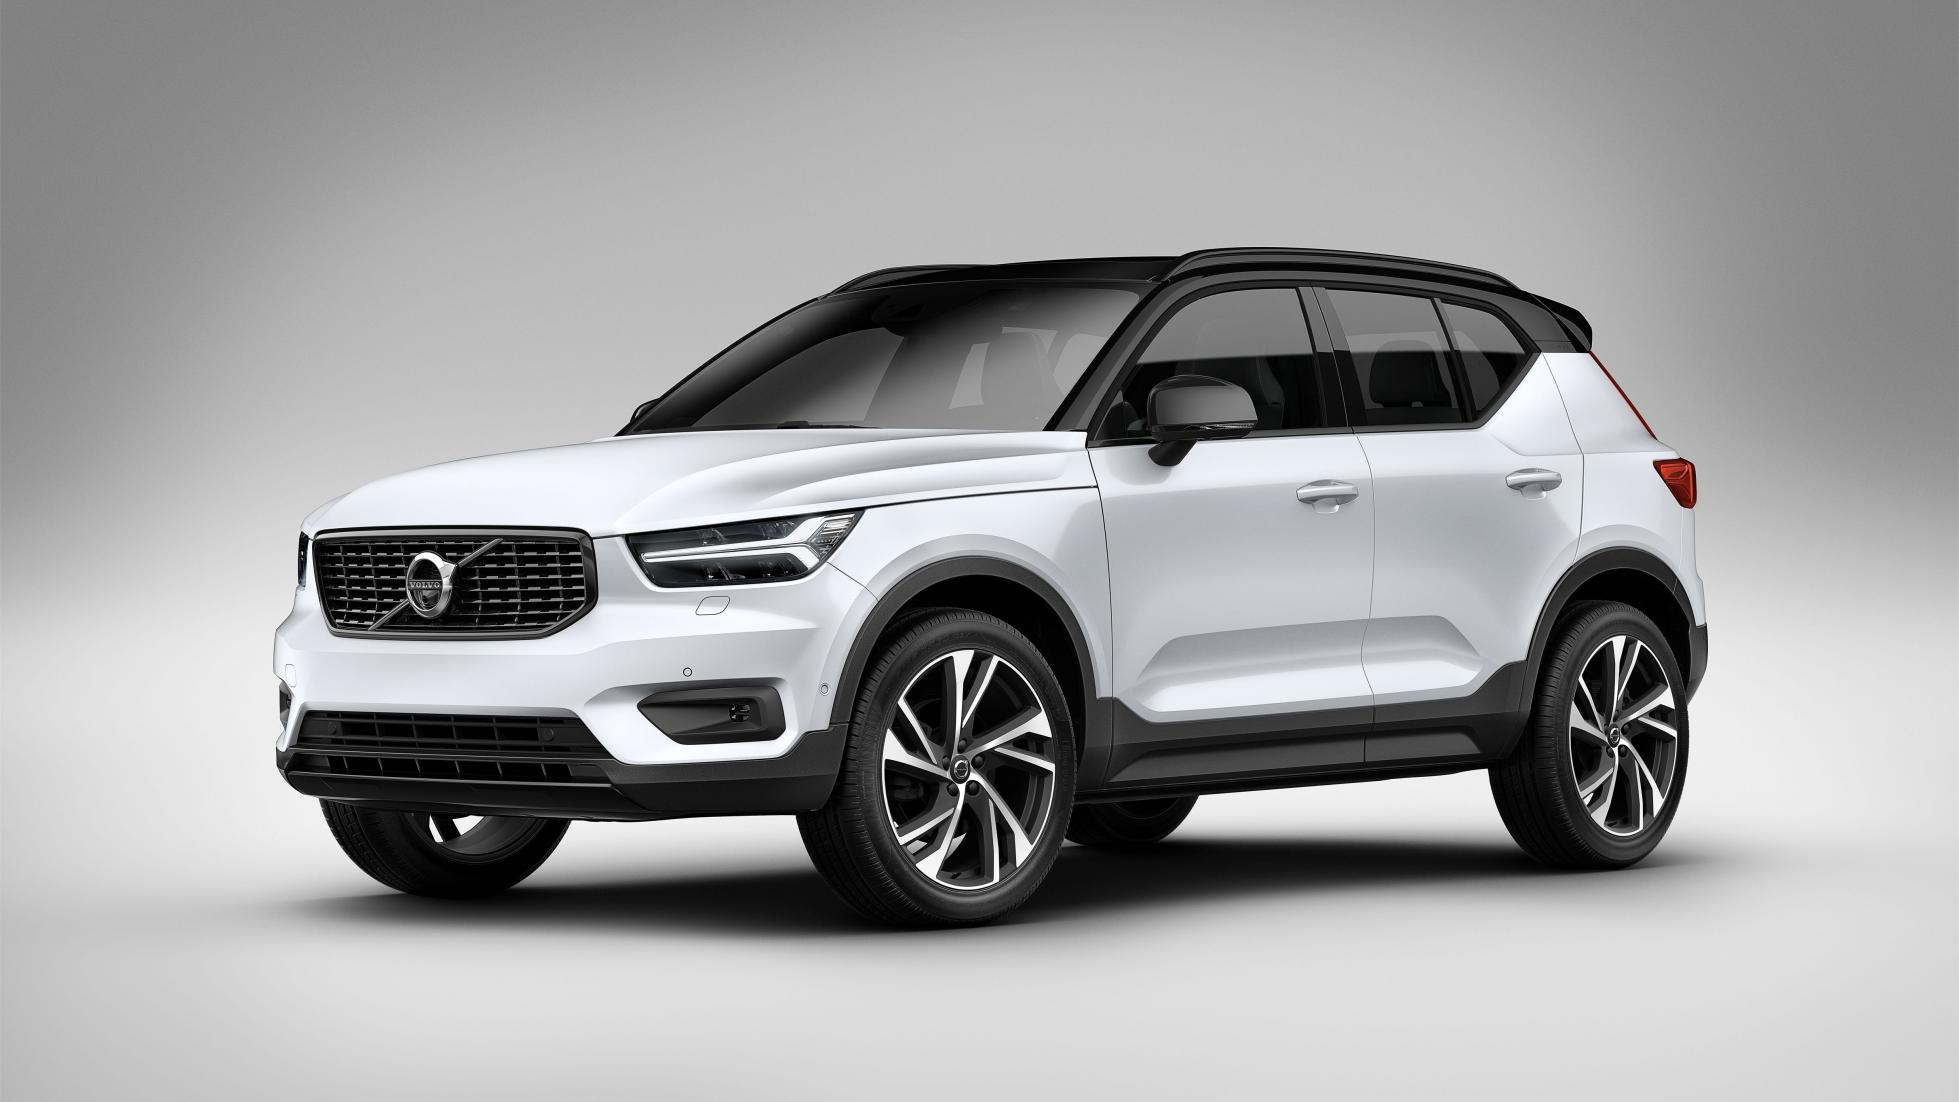 release specs and carwow new suv date volvo concept price news